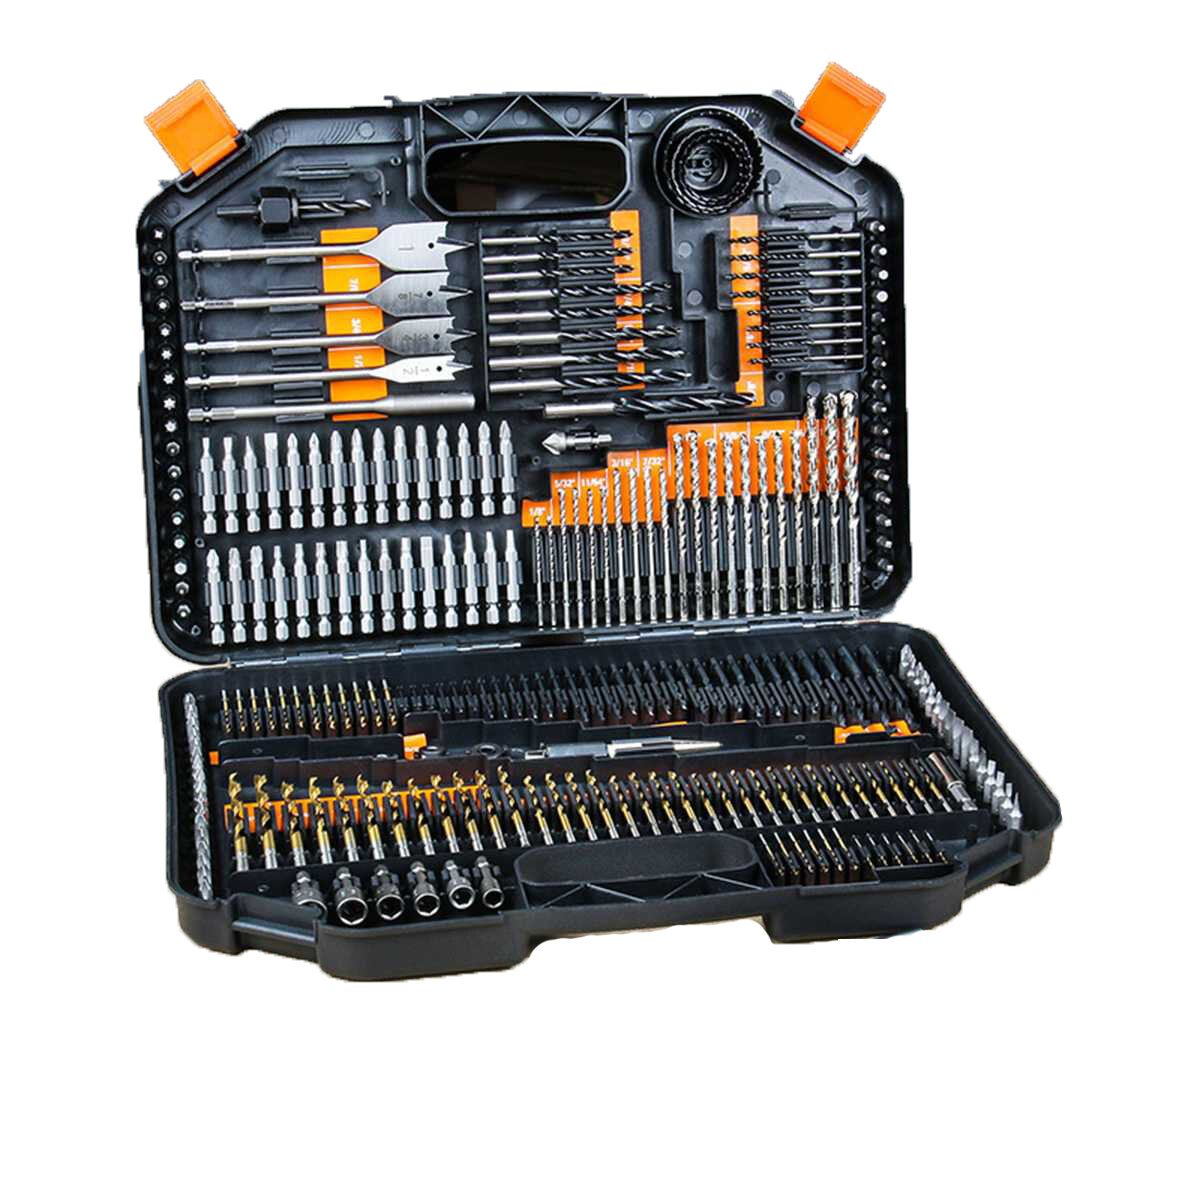 246Pcs Stainless Steel Twist Drill Bit Set High Speed Steel Manual Twist Drill Bits